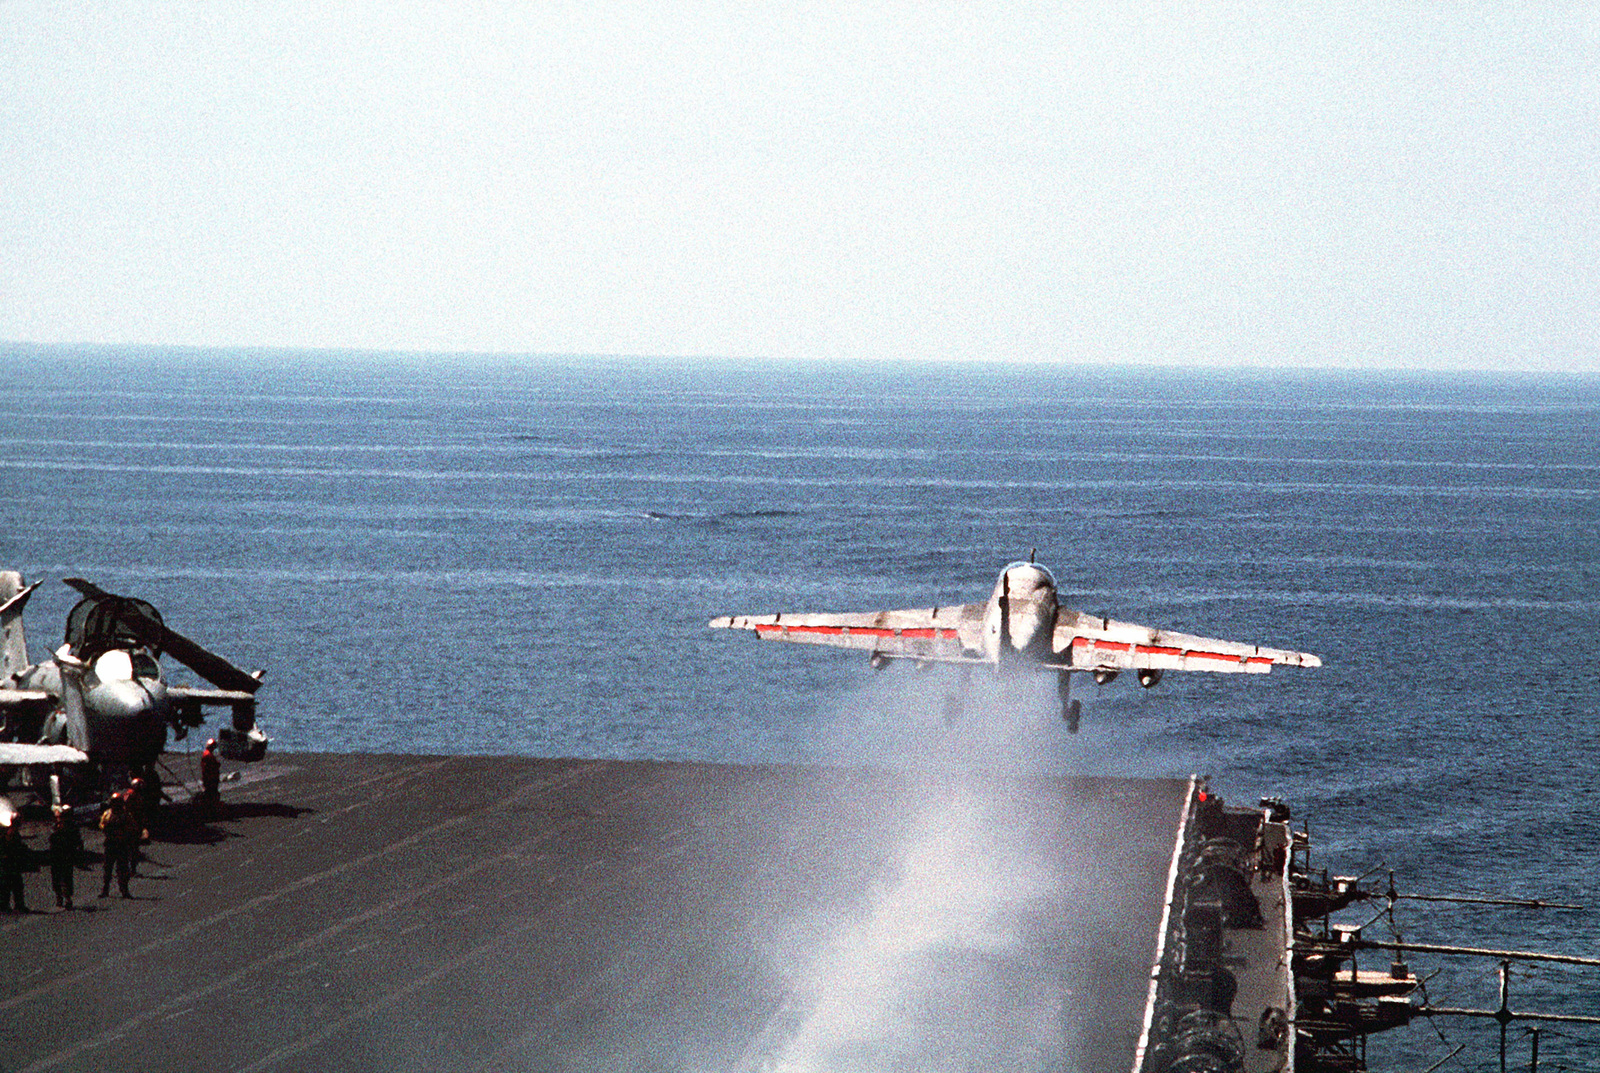 An A-6E Intruder aircraft is launched from the number one starboard catapult of the aircraft carrier USS Independence (CV-62). An EA-6B Prowler aircraft is parked on deck to the left